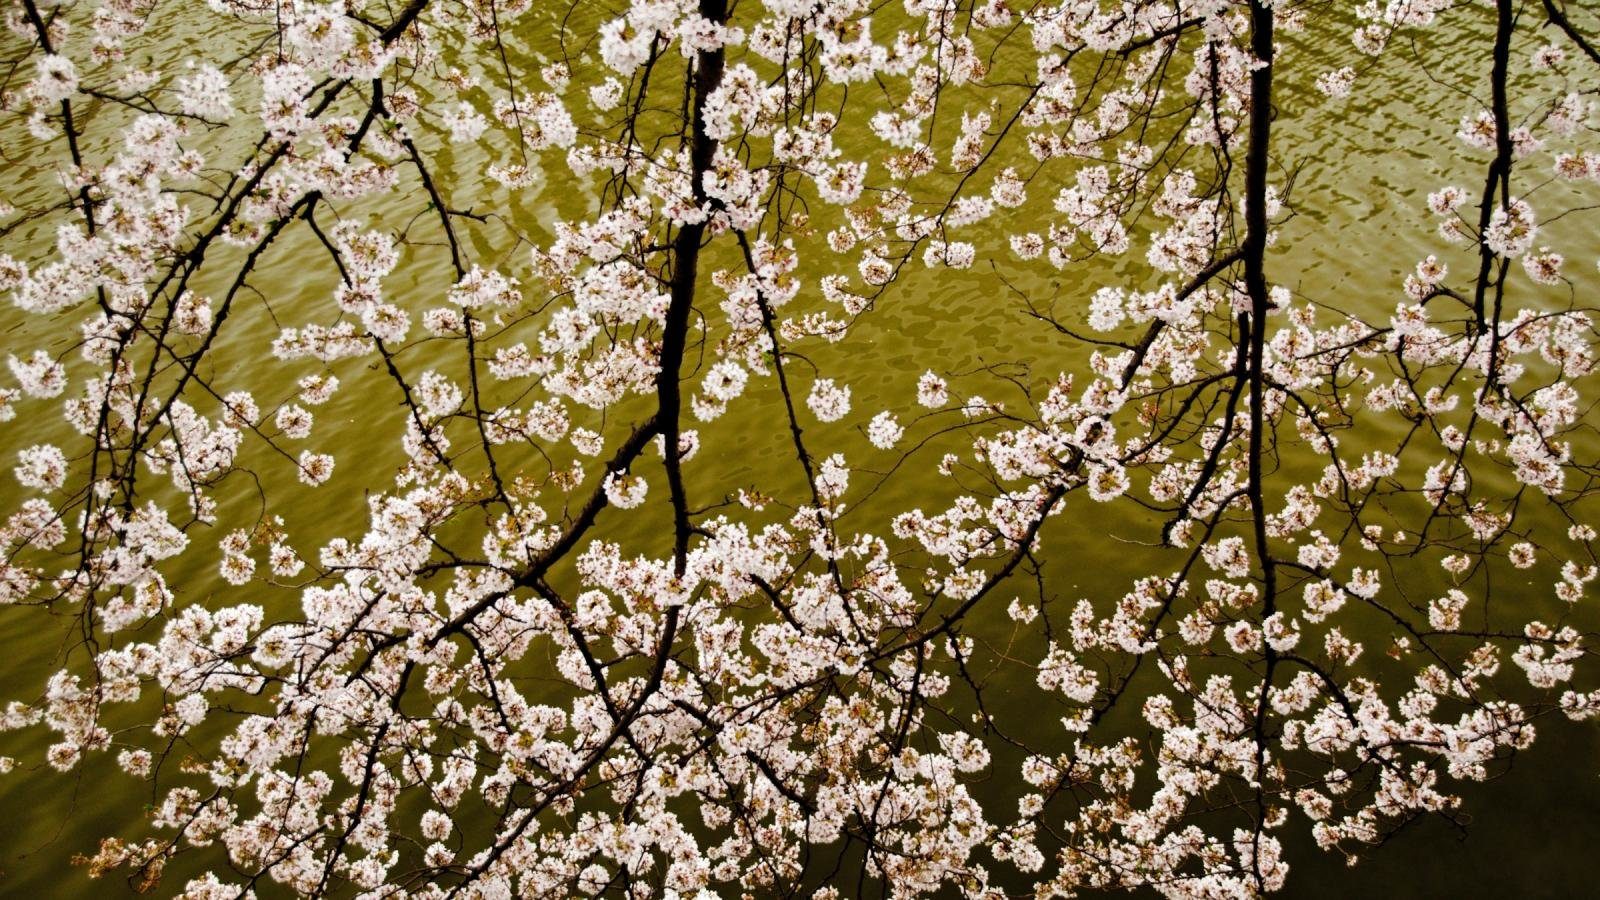 best blossom wallpaper id:332927 for high resolution hd 1600x900